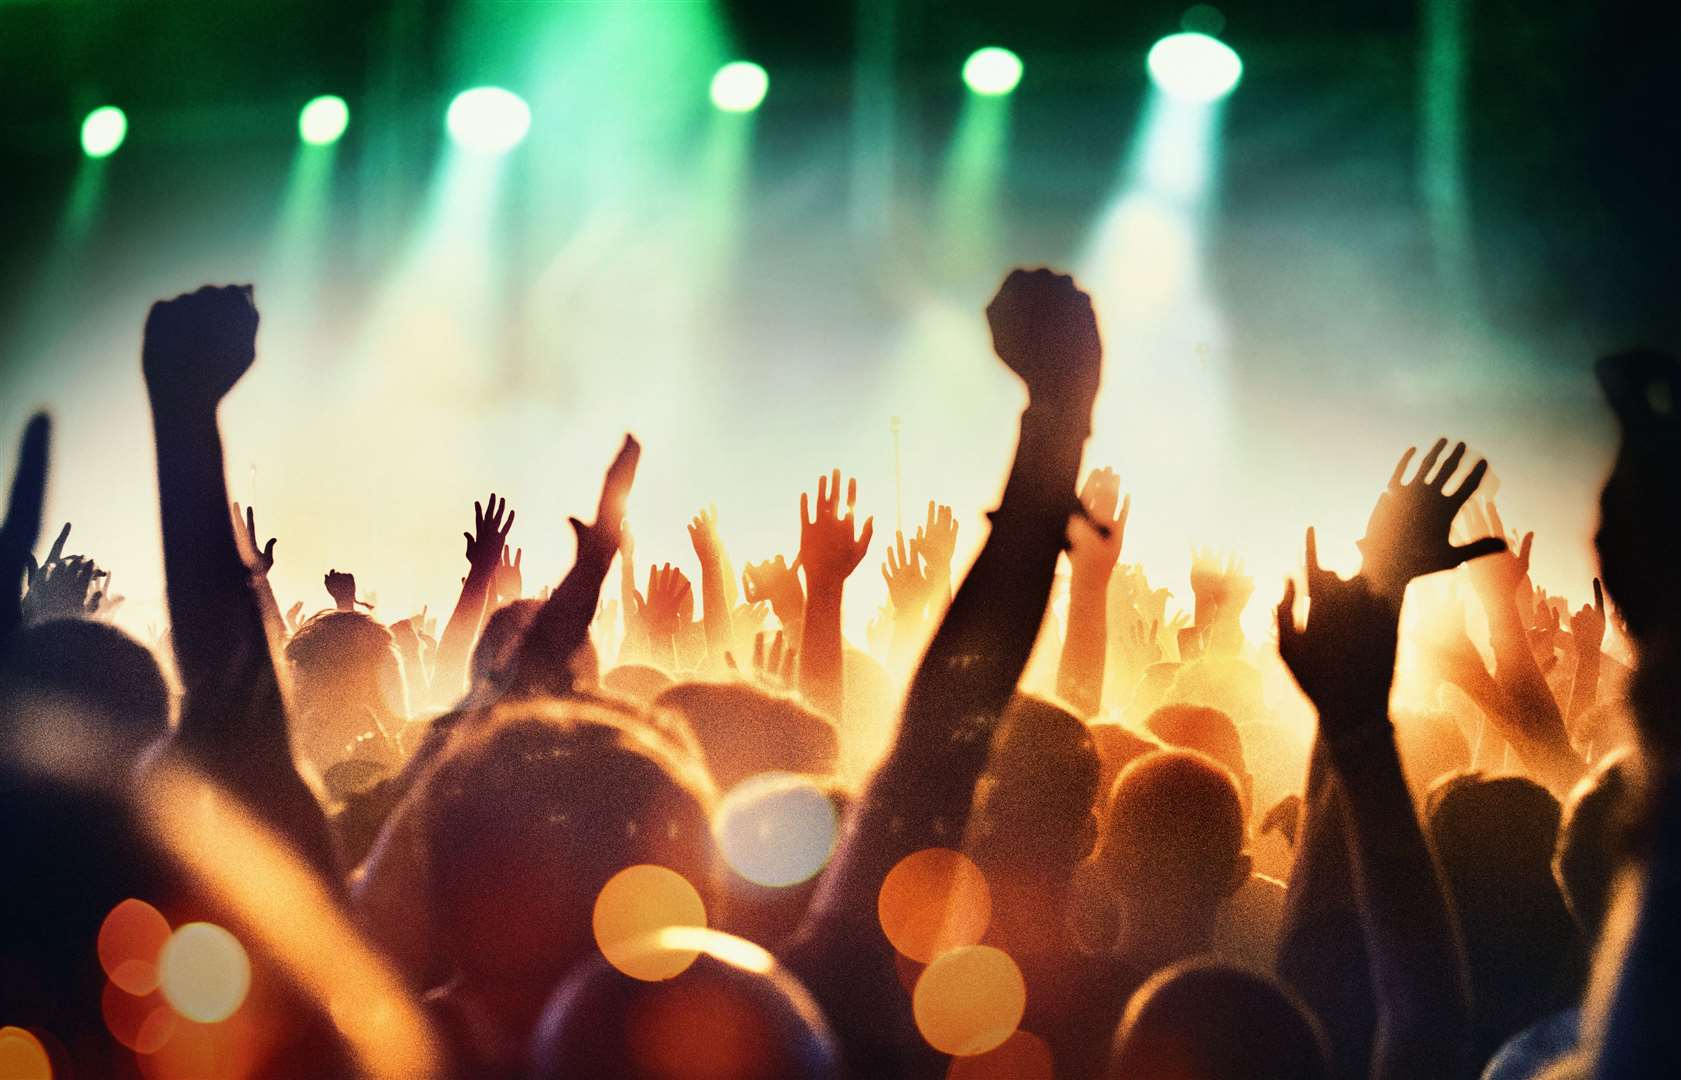 Rear view of large group of unrecognizable people enjoying a concert. Applauding, cheering, shooting video clips. Band is performing on the stage, stage is toned purple and blue while the crowd is lit orange.. (51145168)